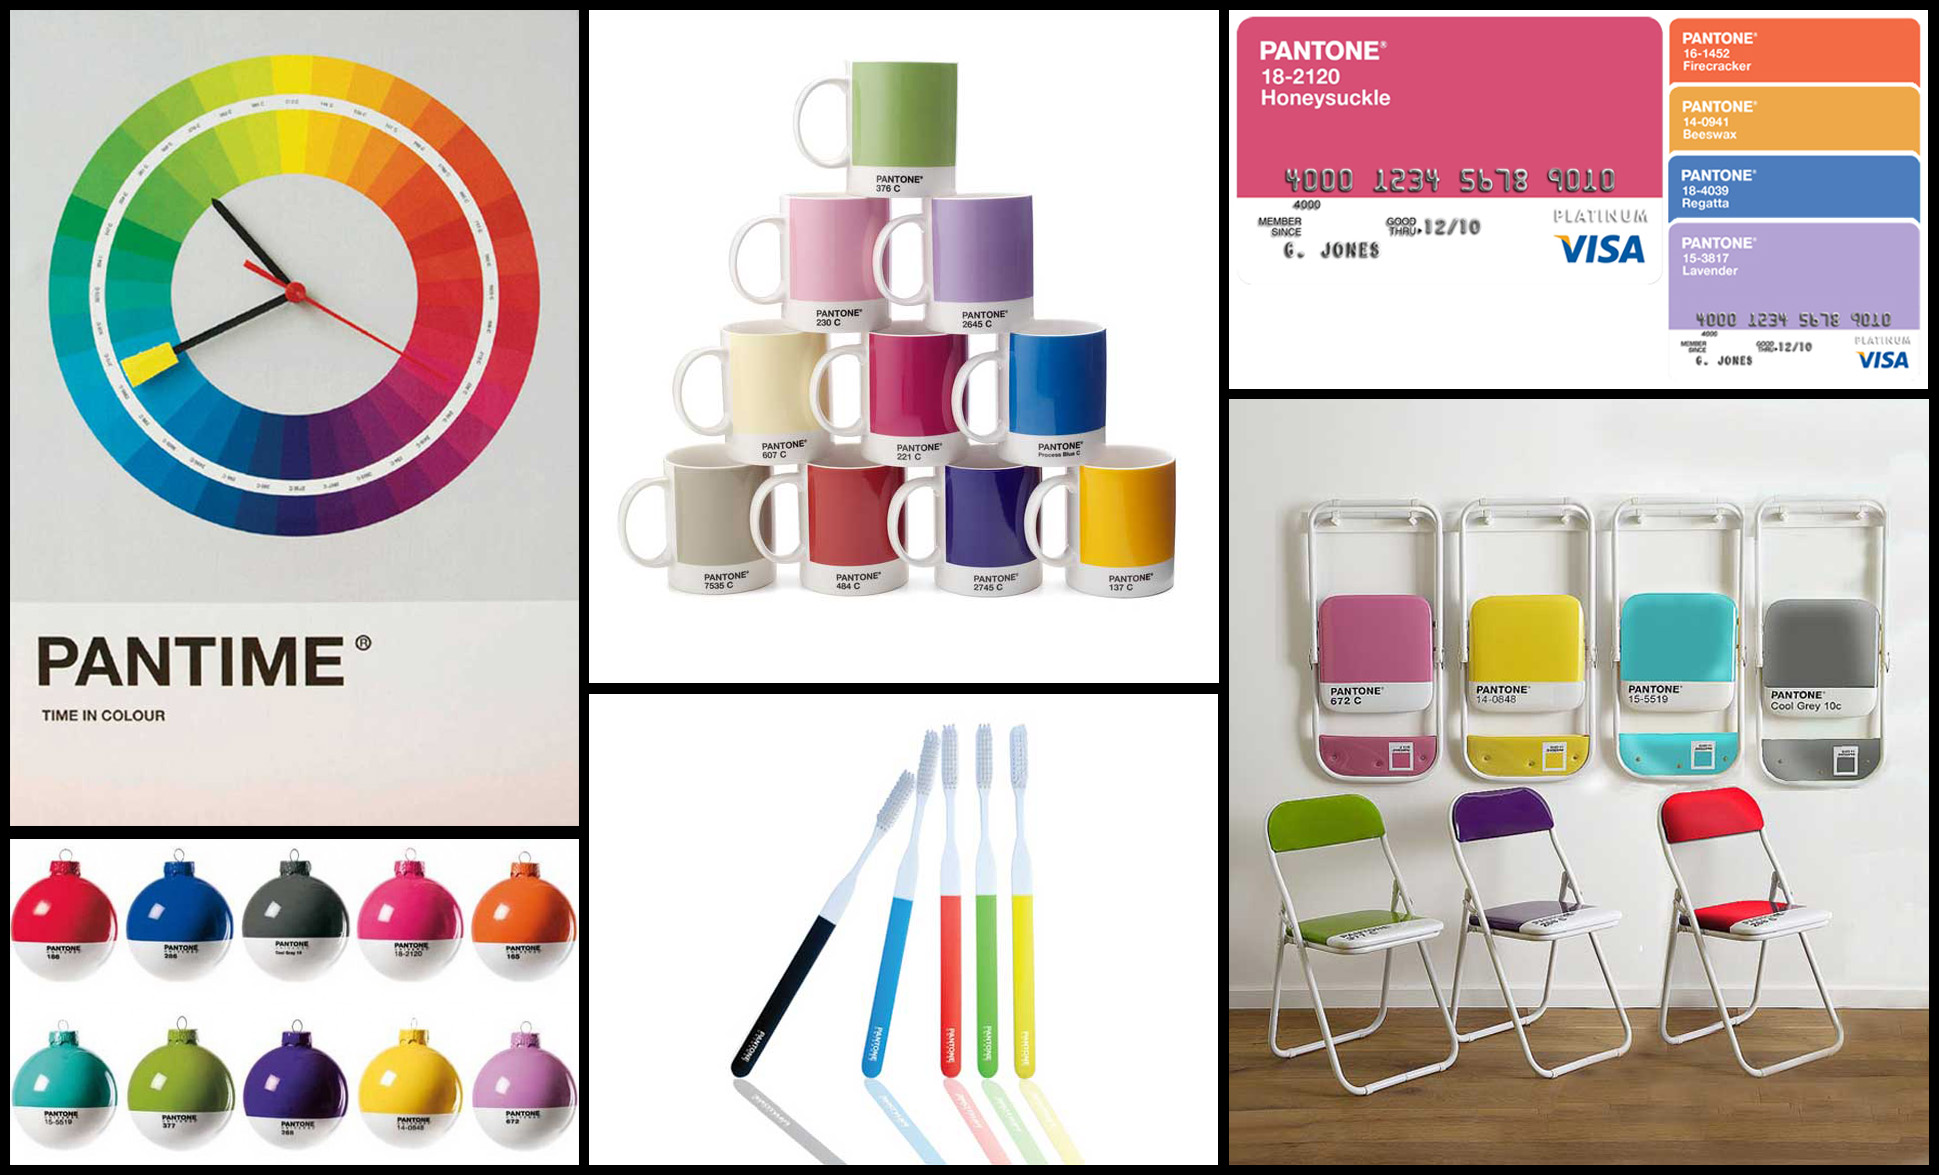 Pantone as a brand has to assert their dominance as the global director of colour. They invented the language now they have to ensure that they are known for being the voice of colour predictions. One way to do that is to make colour cool and using everyday objects their vehicle to deliver that message. Clocks, chairs, even toothbrushes and baubles, all of it is a reminder that they are the powerhouse of colour. (I do actually really want that clock).